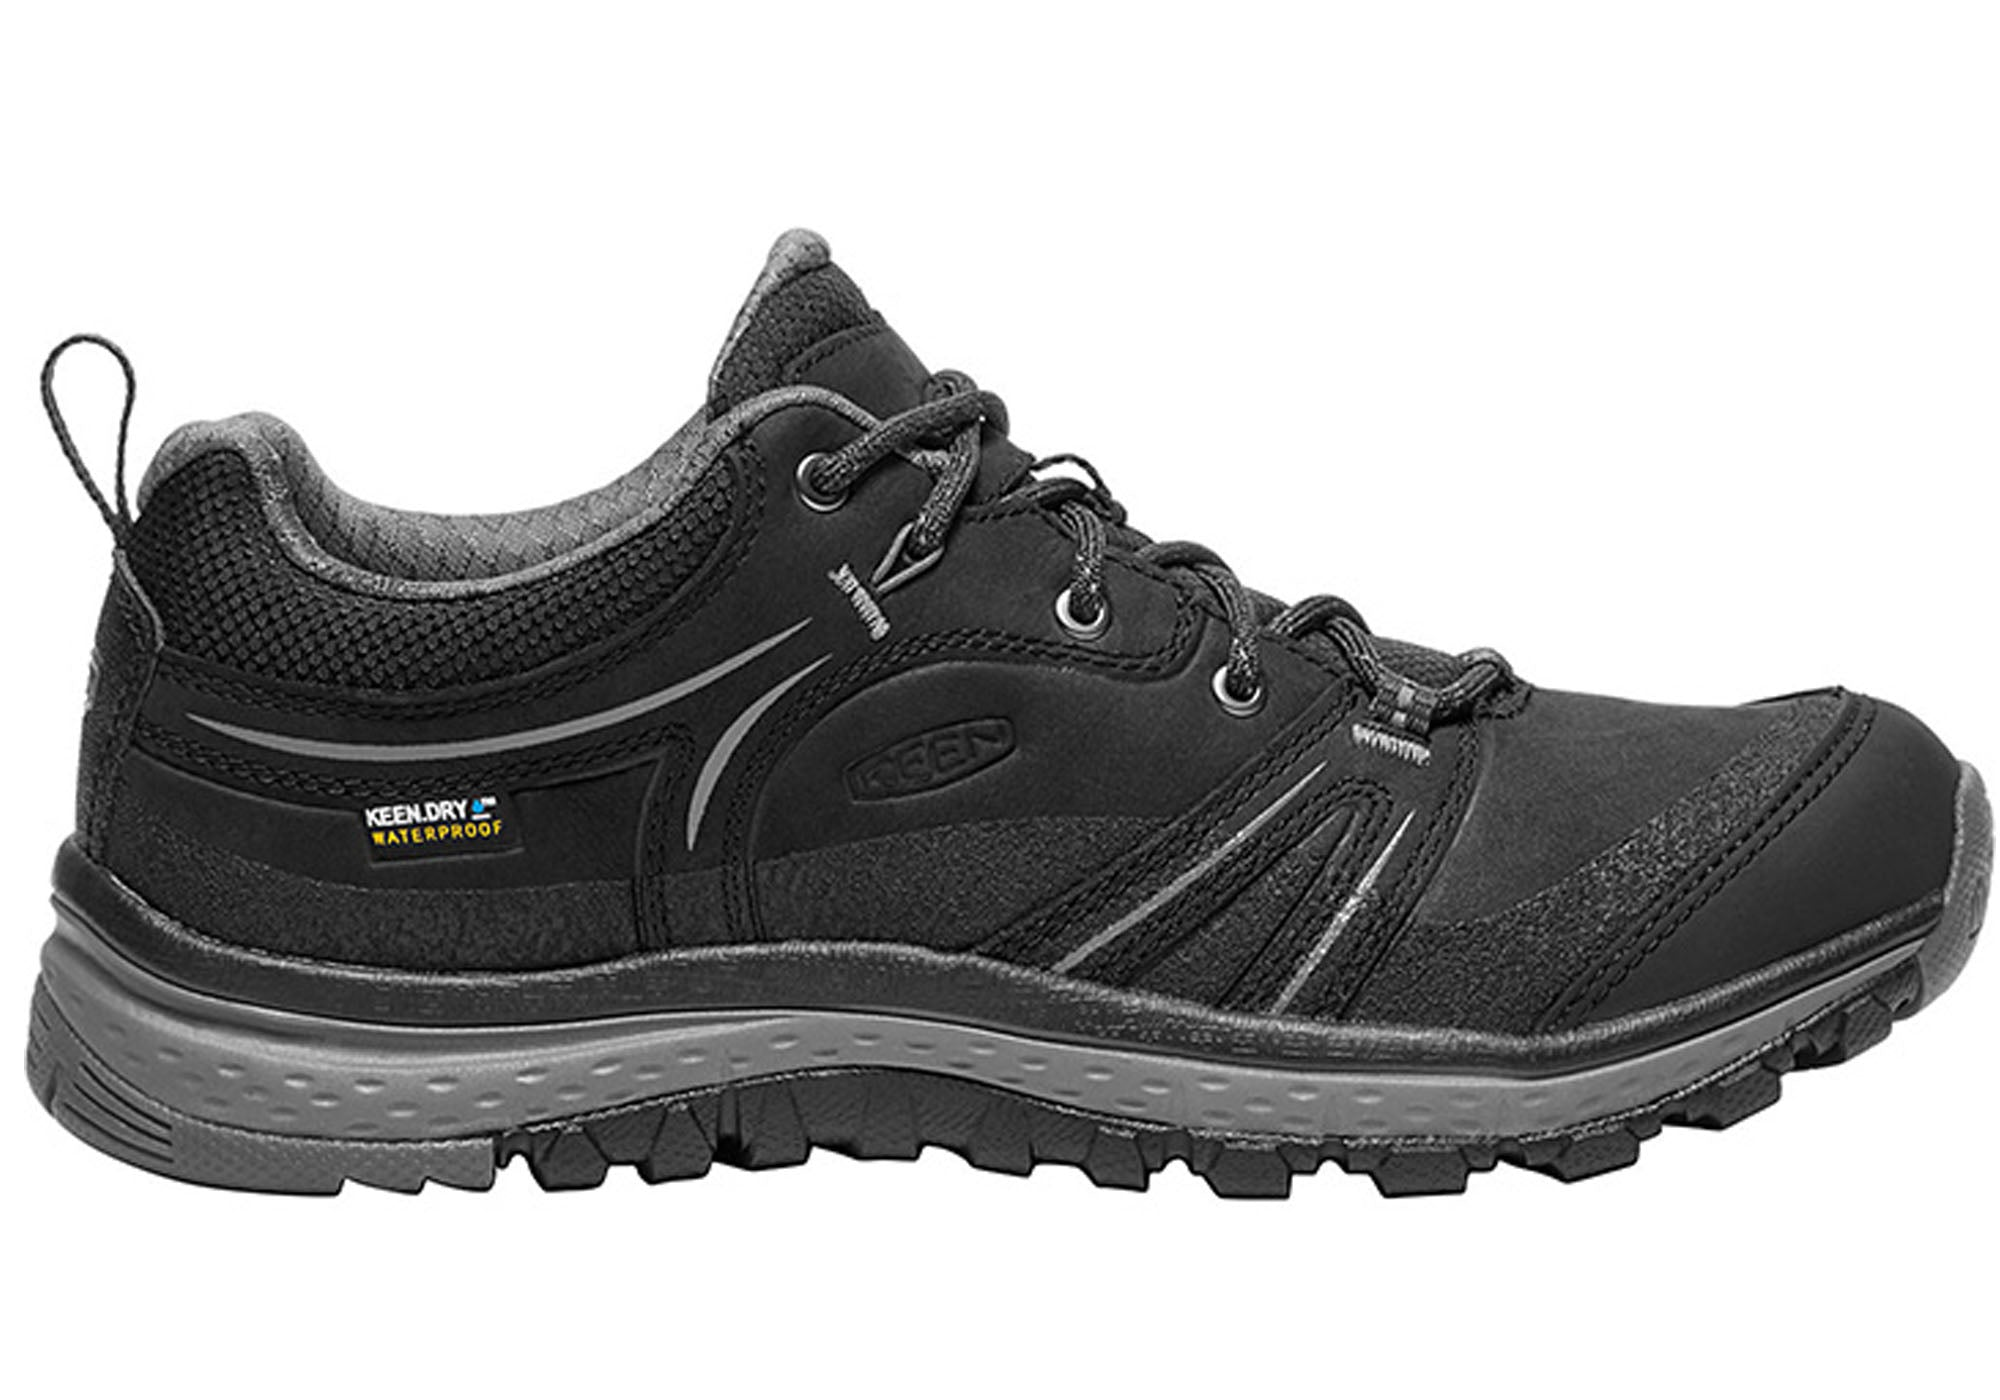 New Keen Terradora Leather Waterproof Shoes Donna Comfort Hiking Shoes Waterproof 407eb0